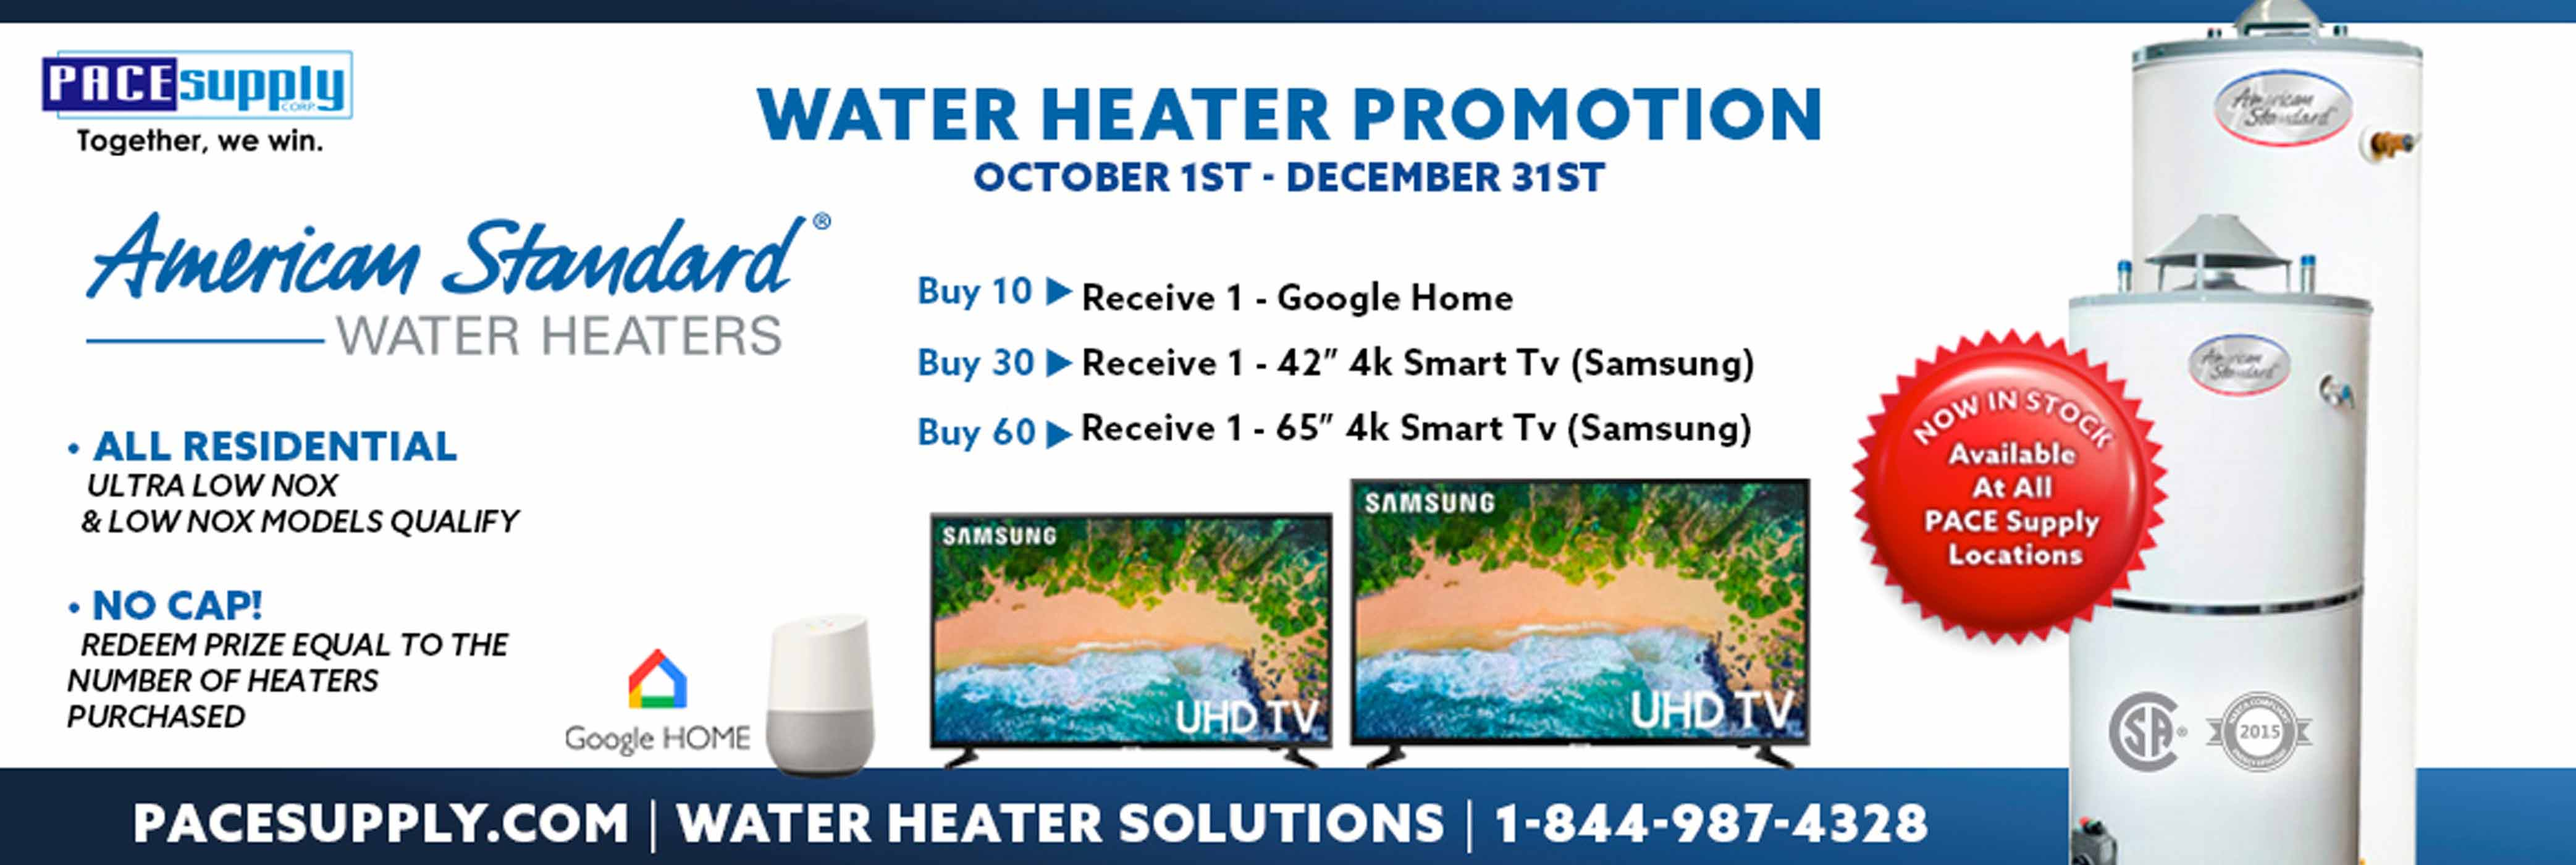 American Standard Water Heater Promotion